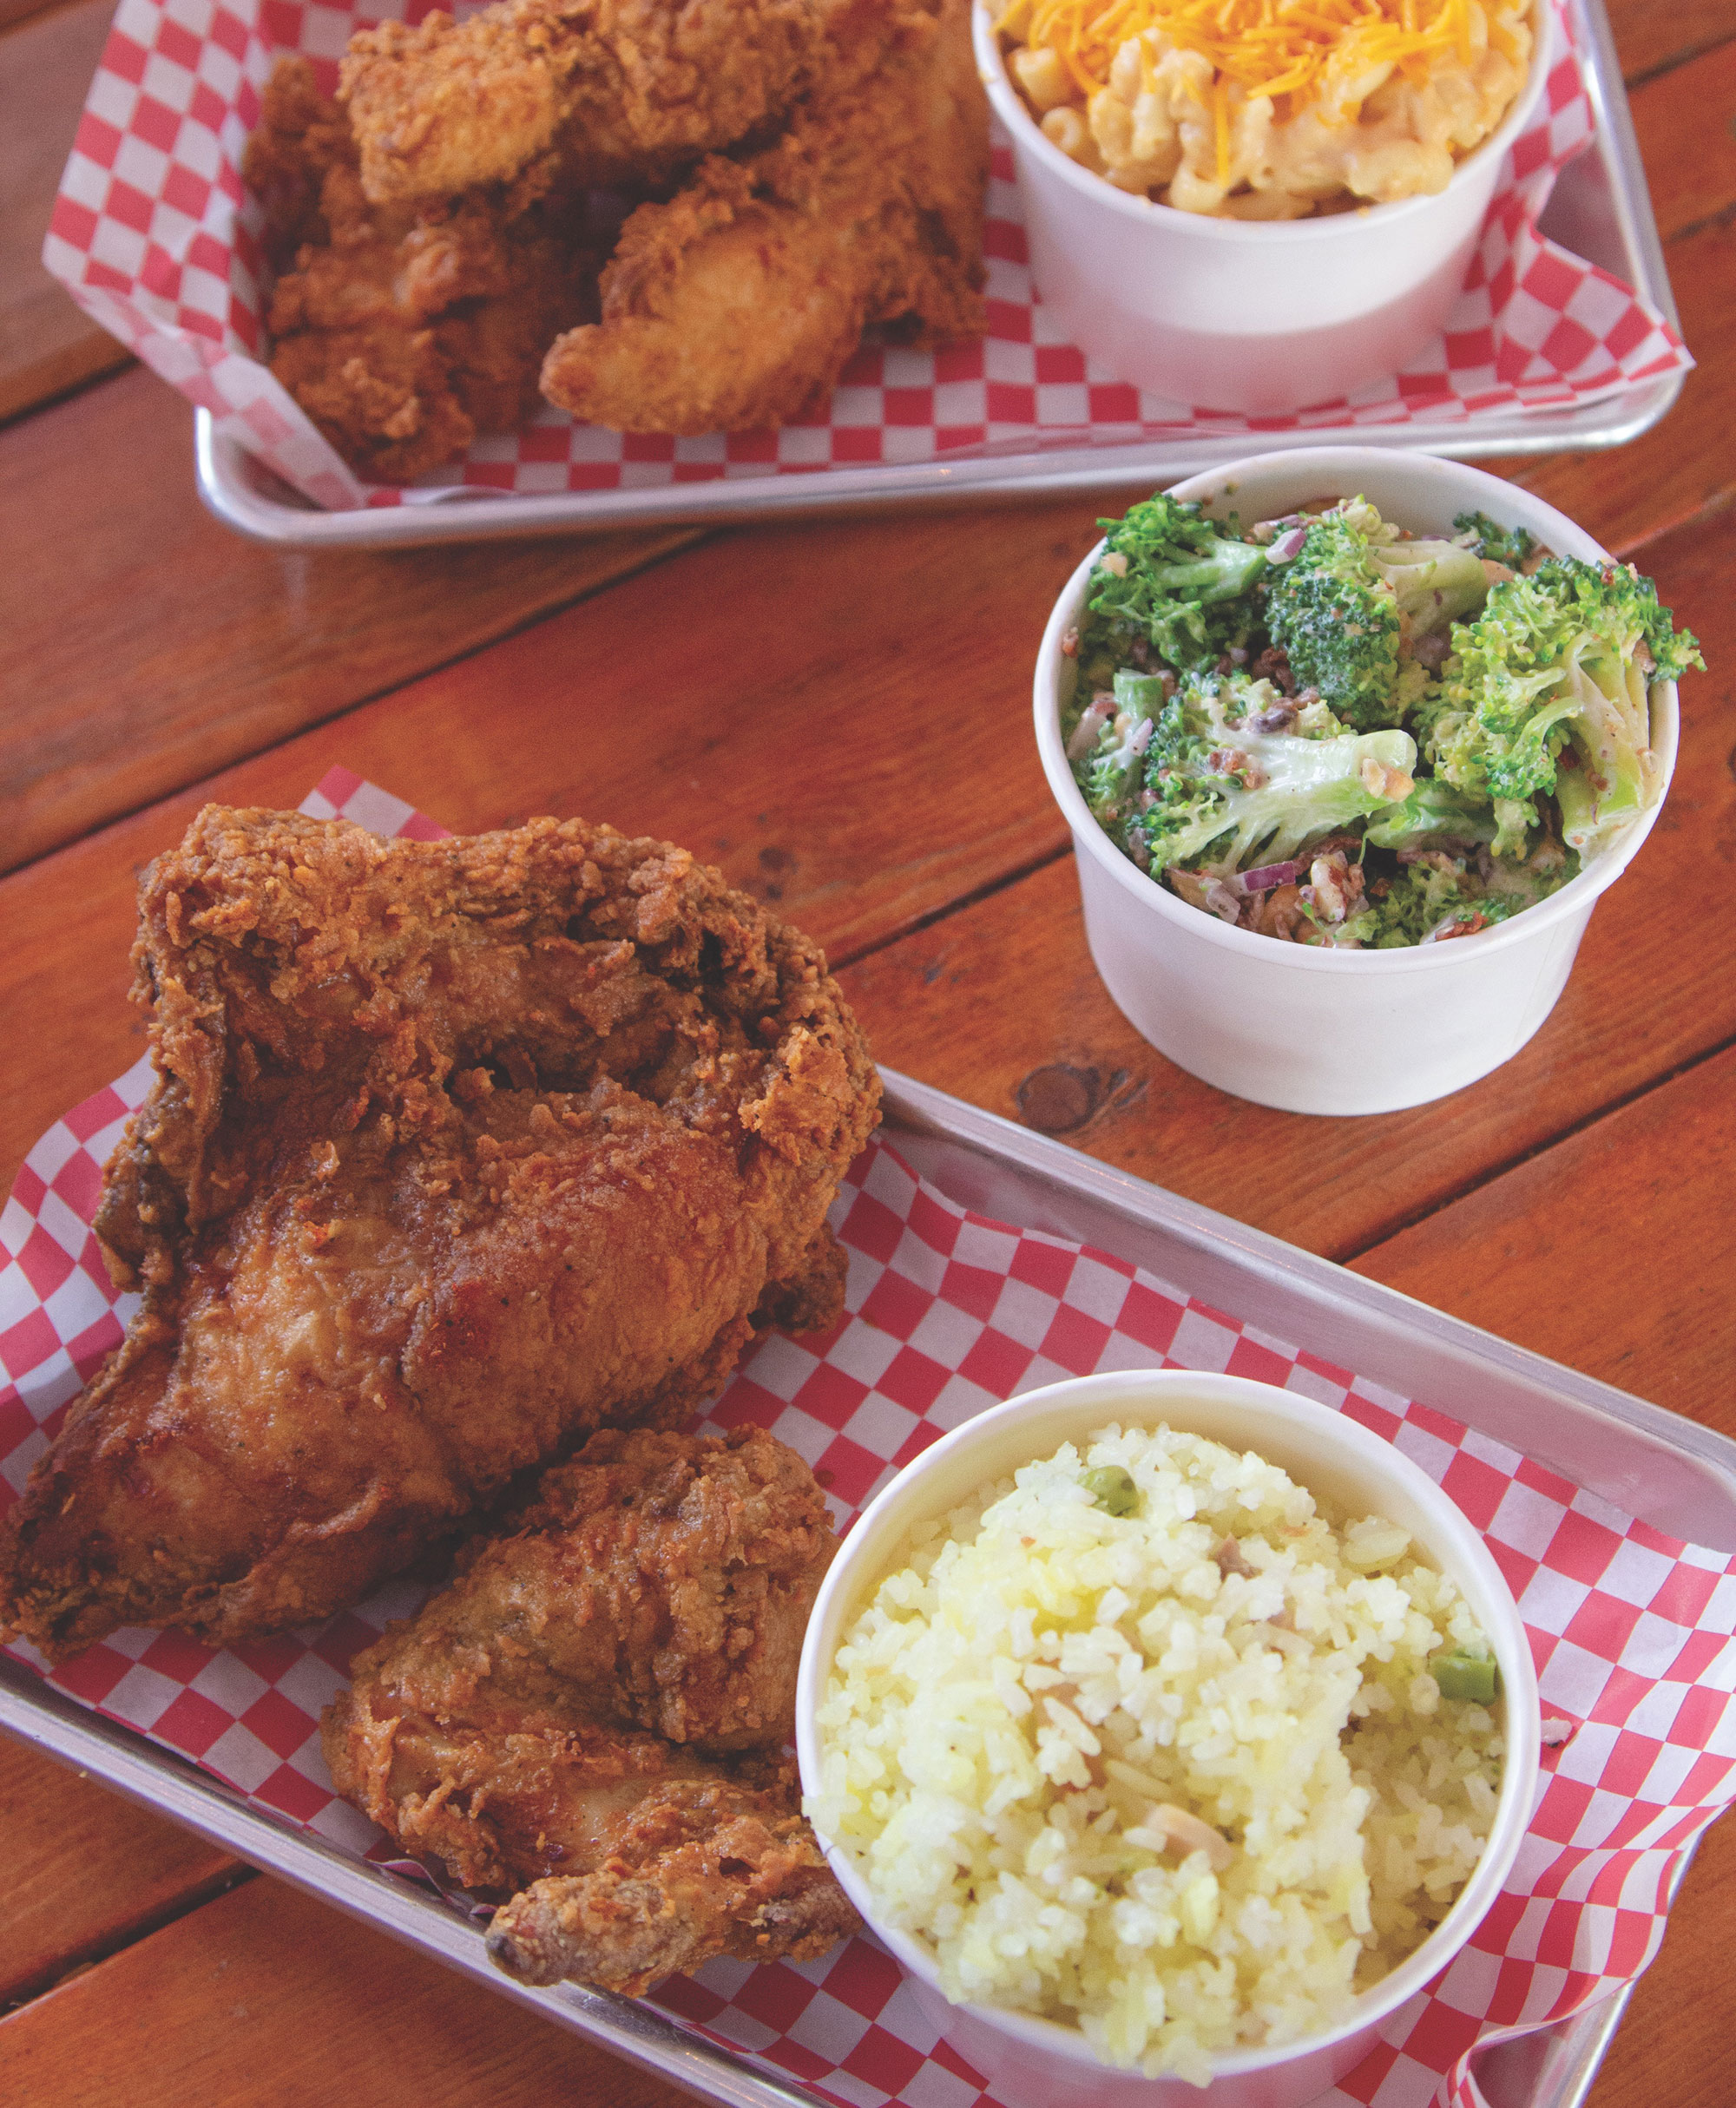 Fried chicken and sides at BirdHouse; Photo by Leah LeMoine